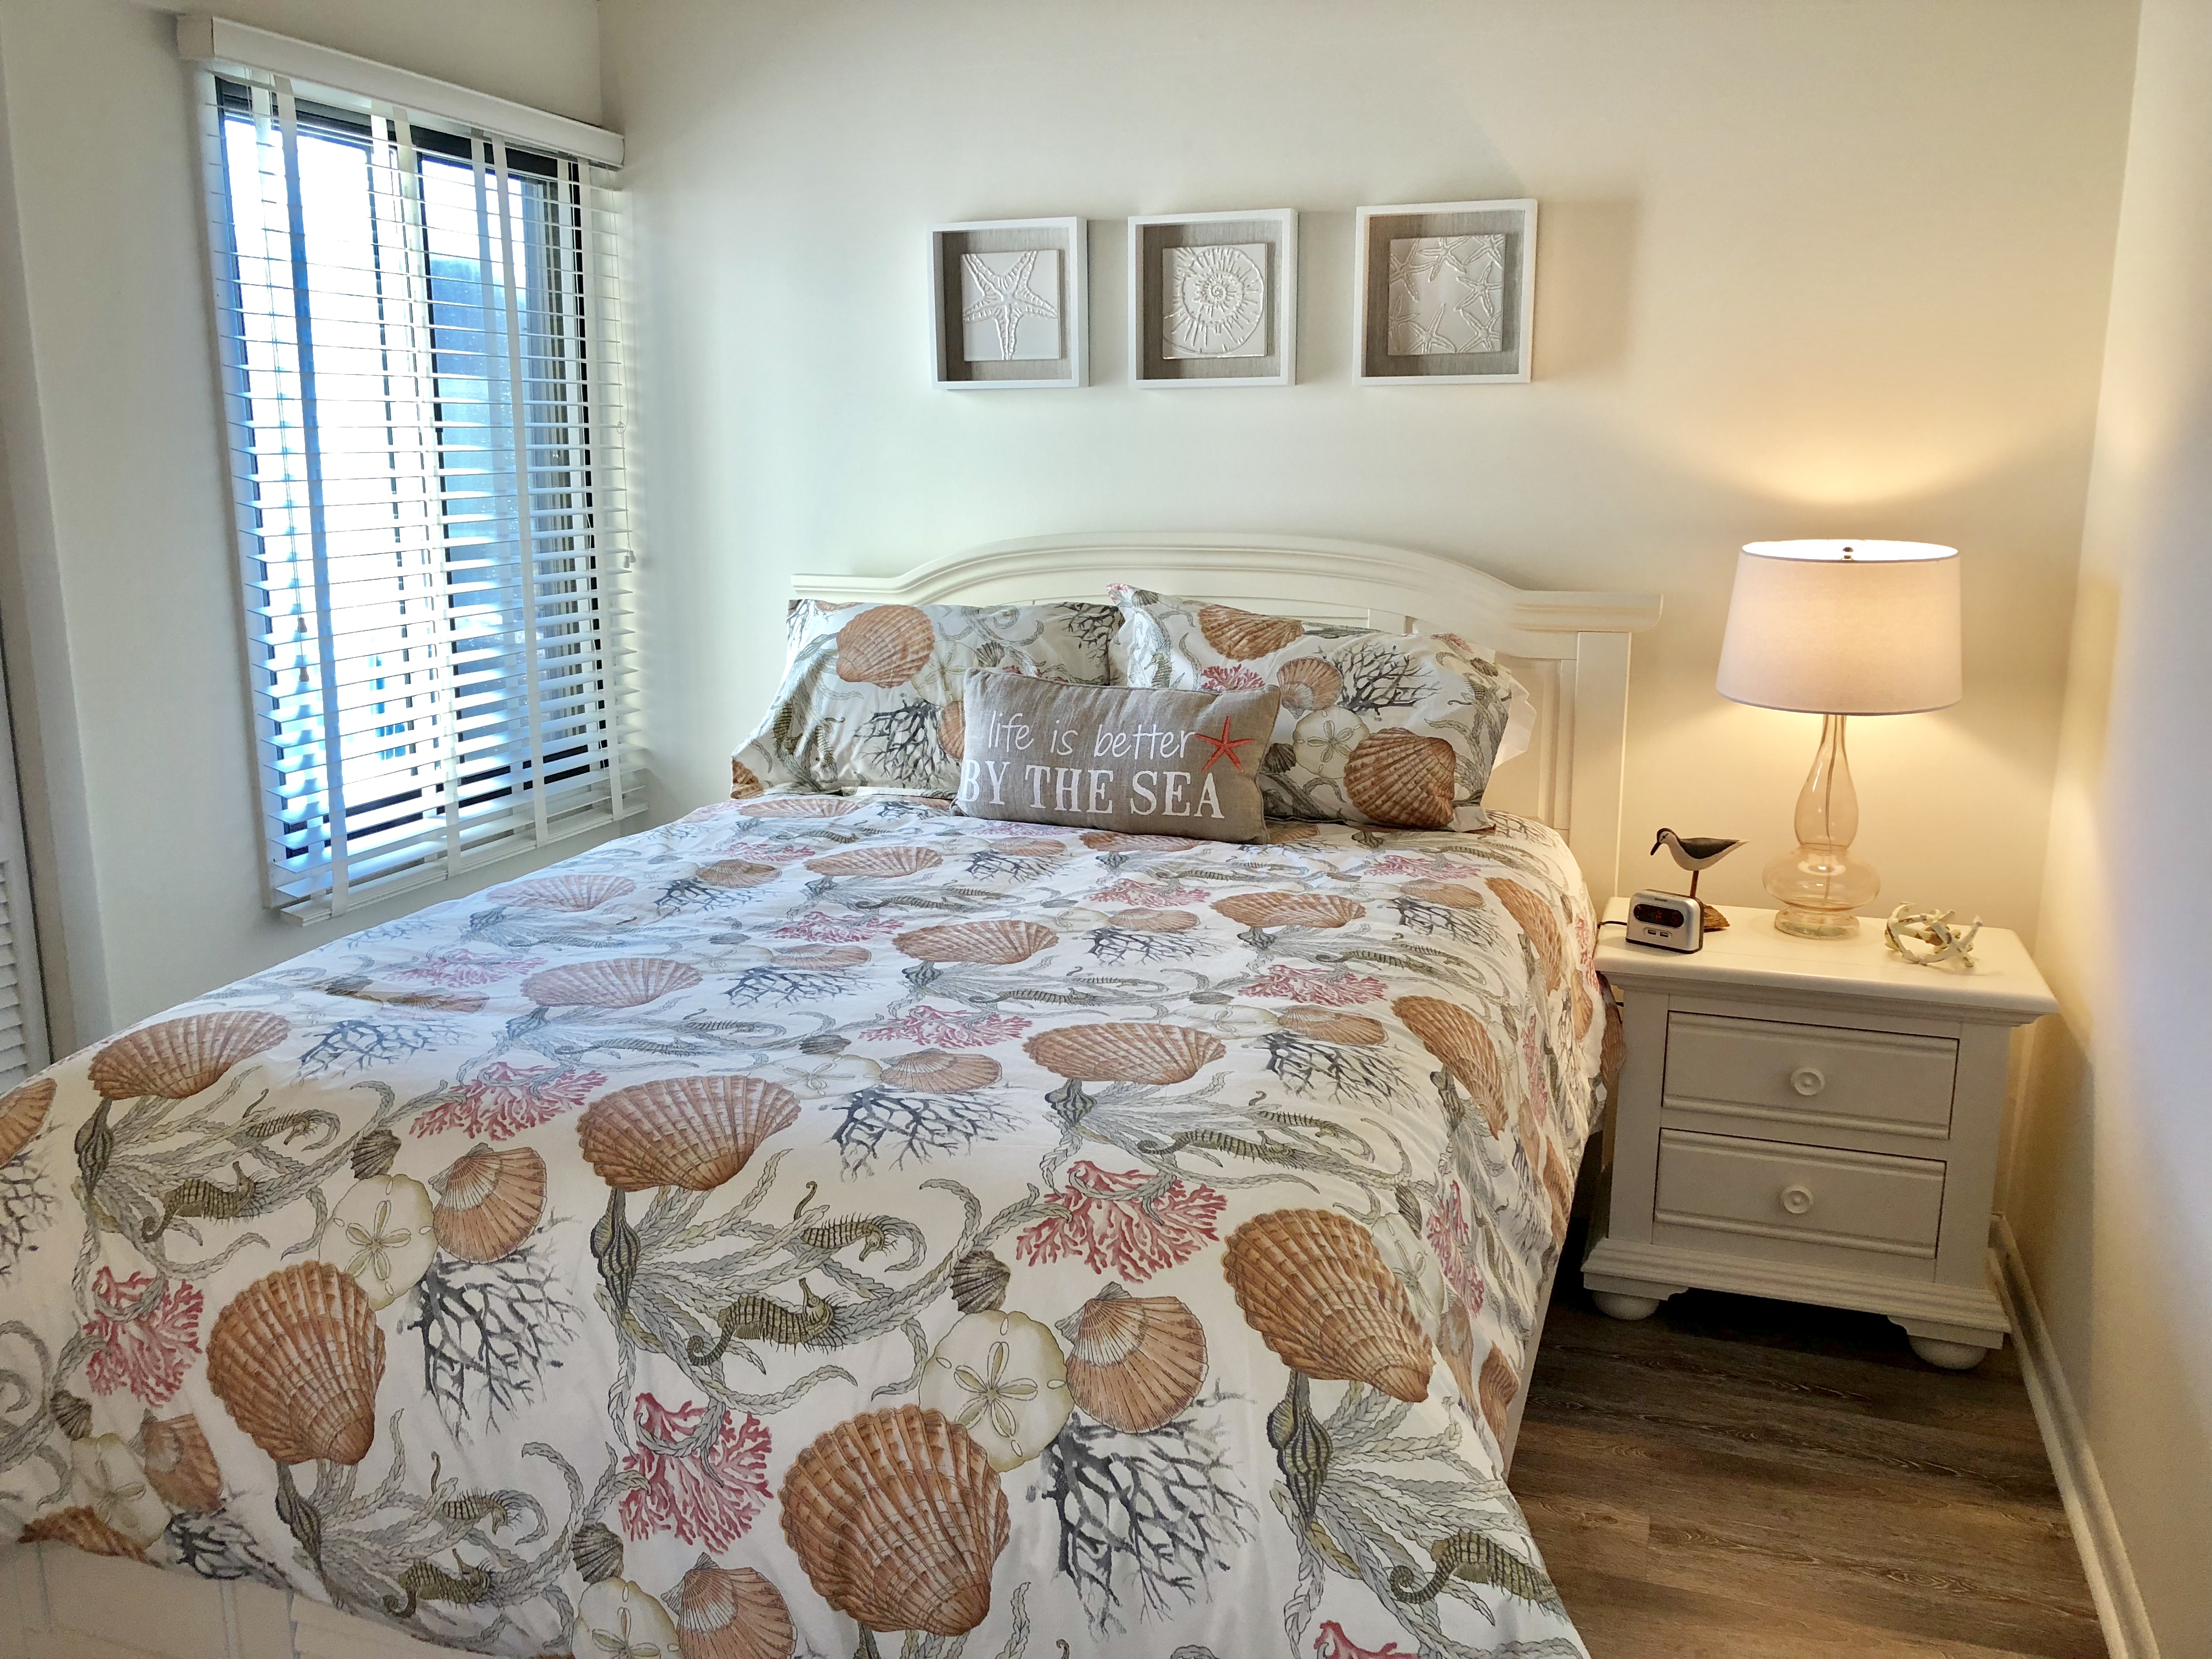 The guest bedroom has a queen size bed and lively seaside decor.